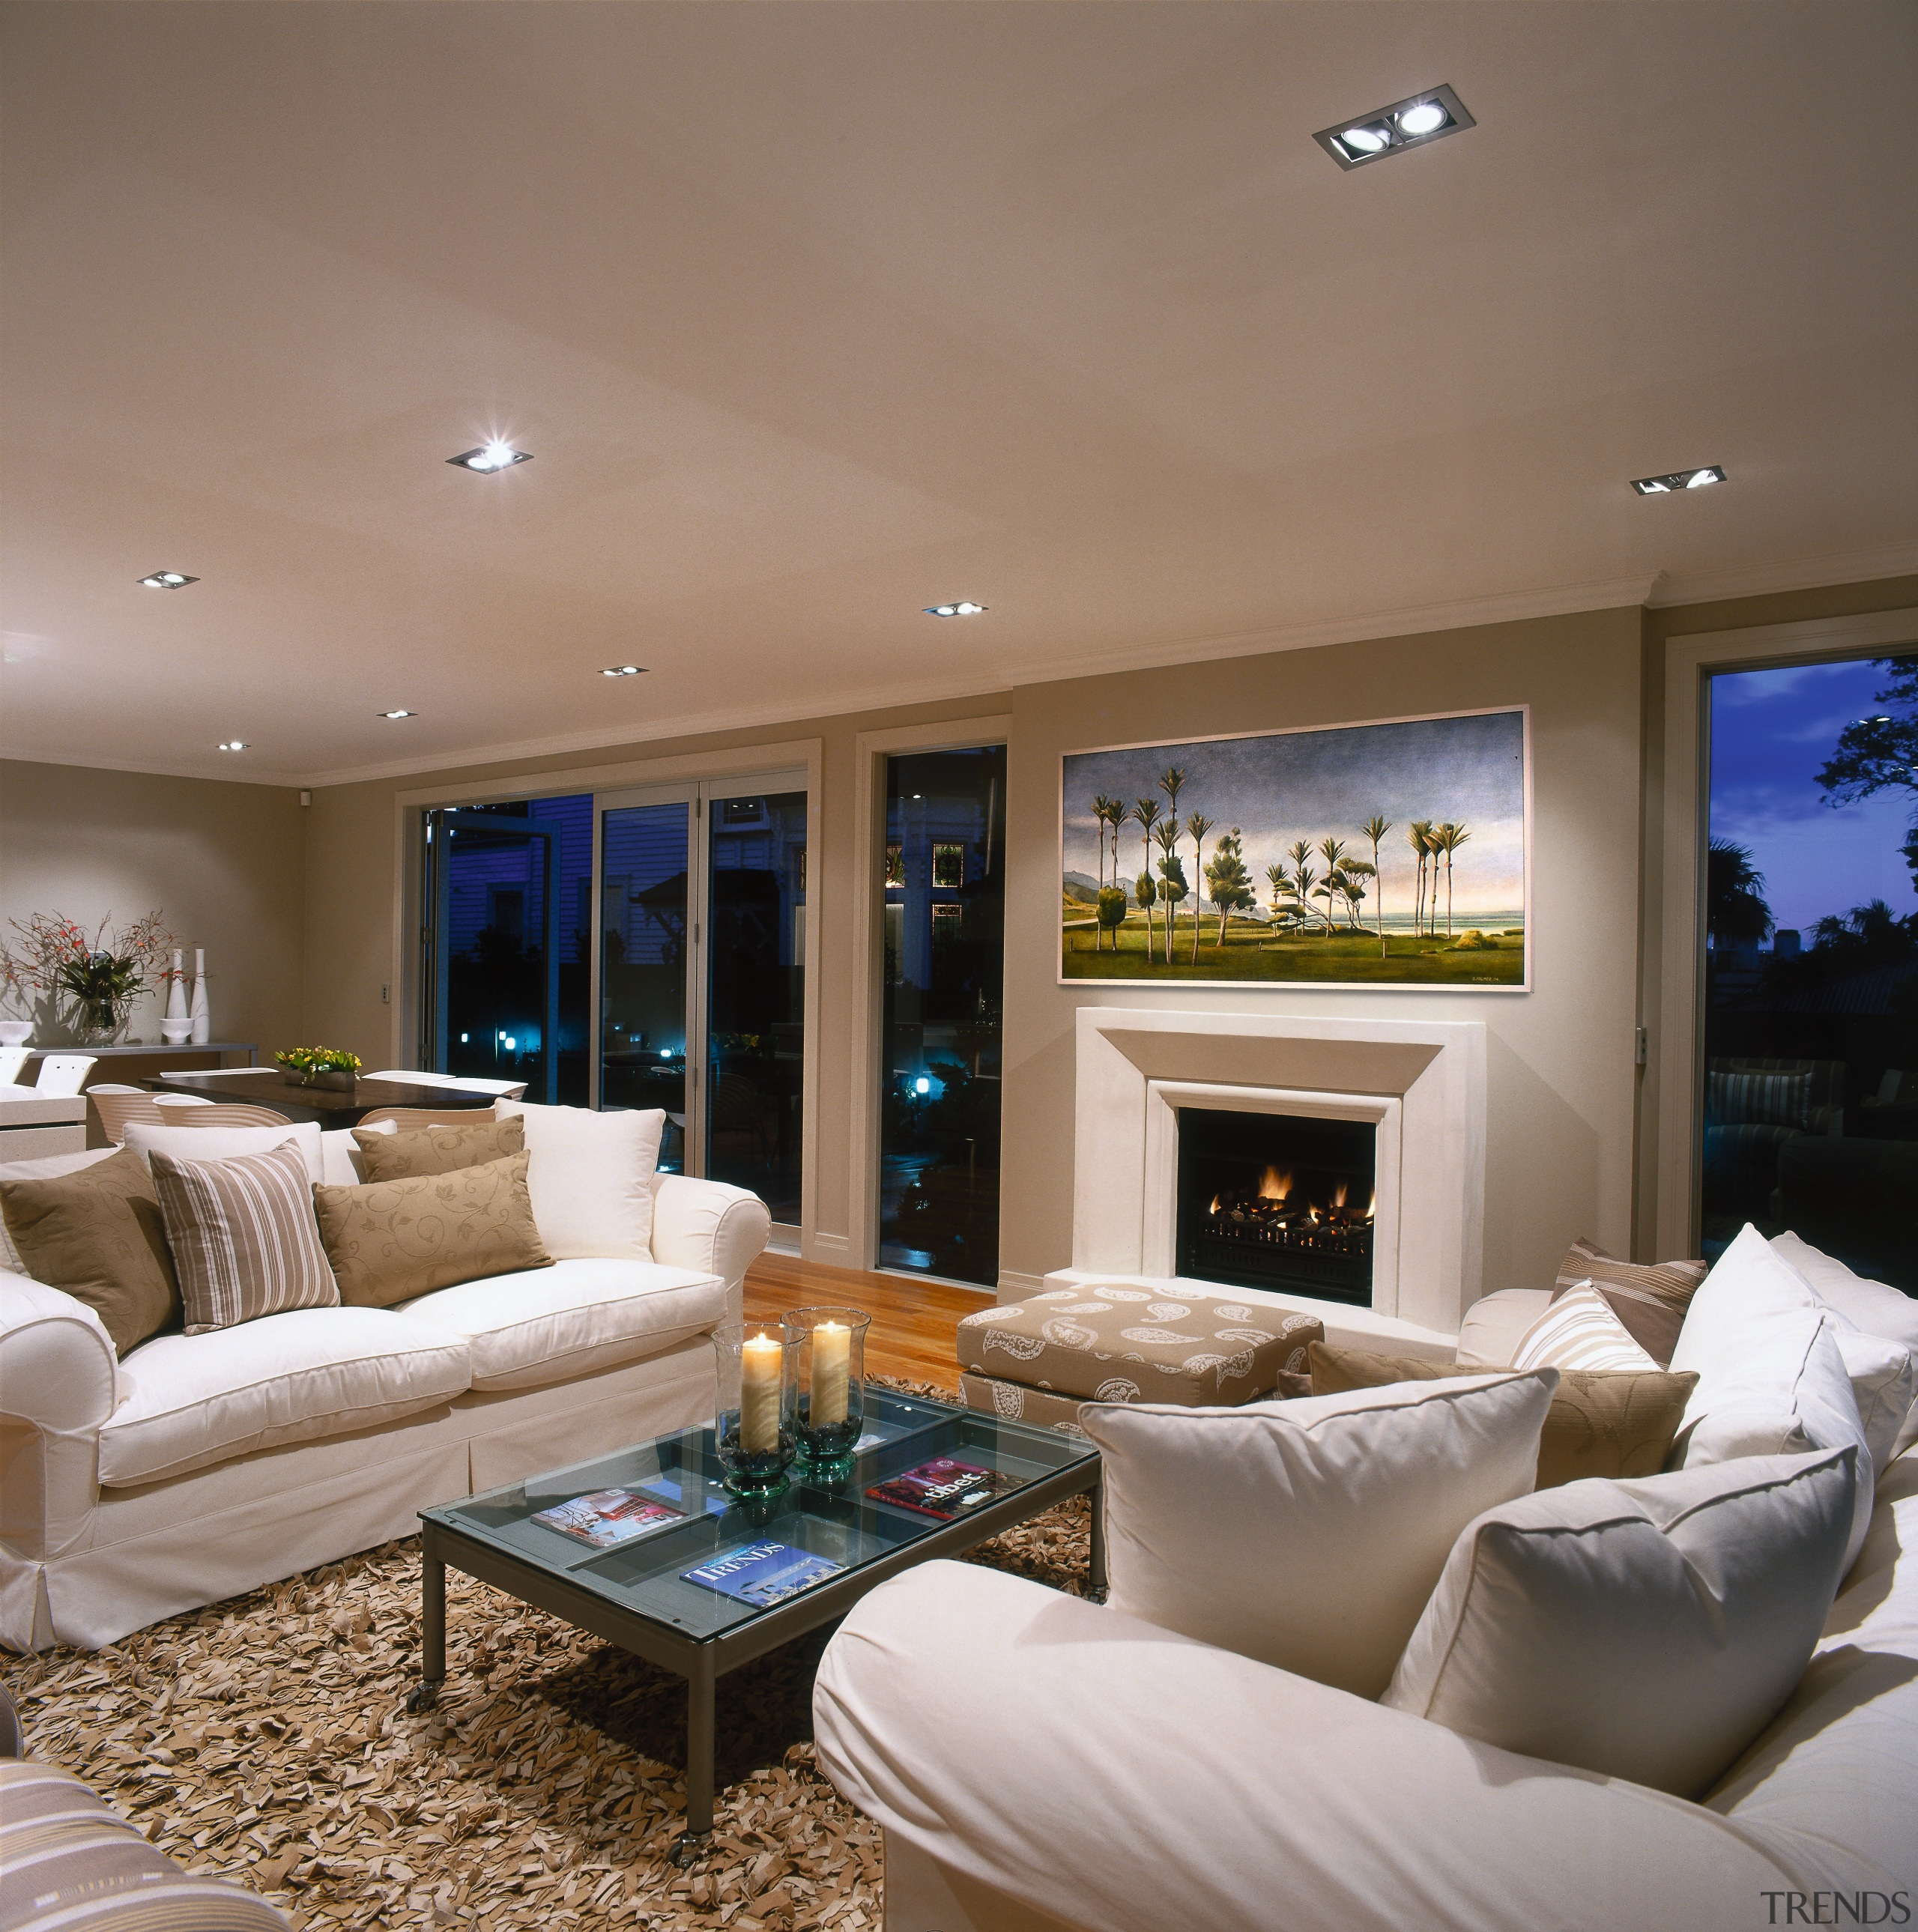 view of this living area - view of ceiling, estate, home, interior design, living room, real estate, room, wall, window, brown, gray